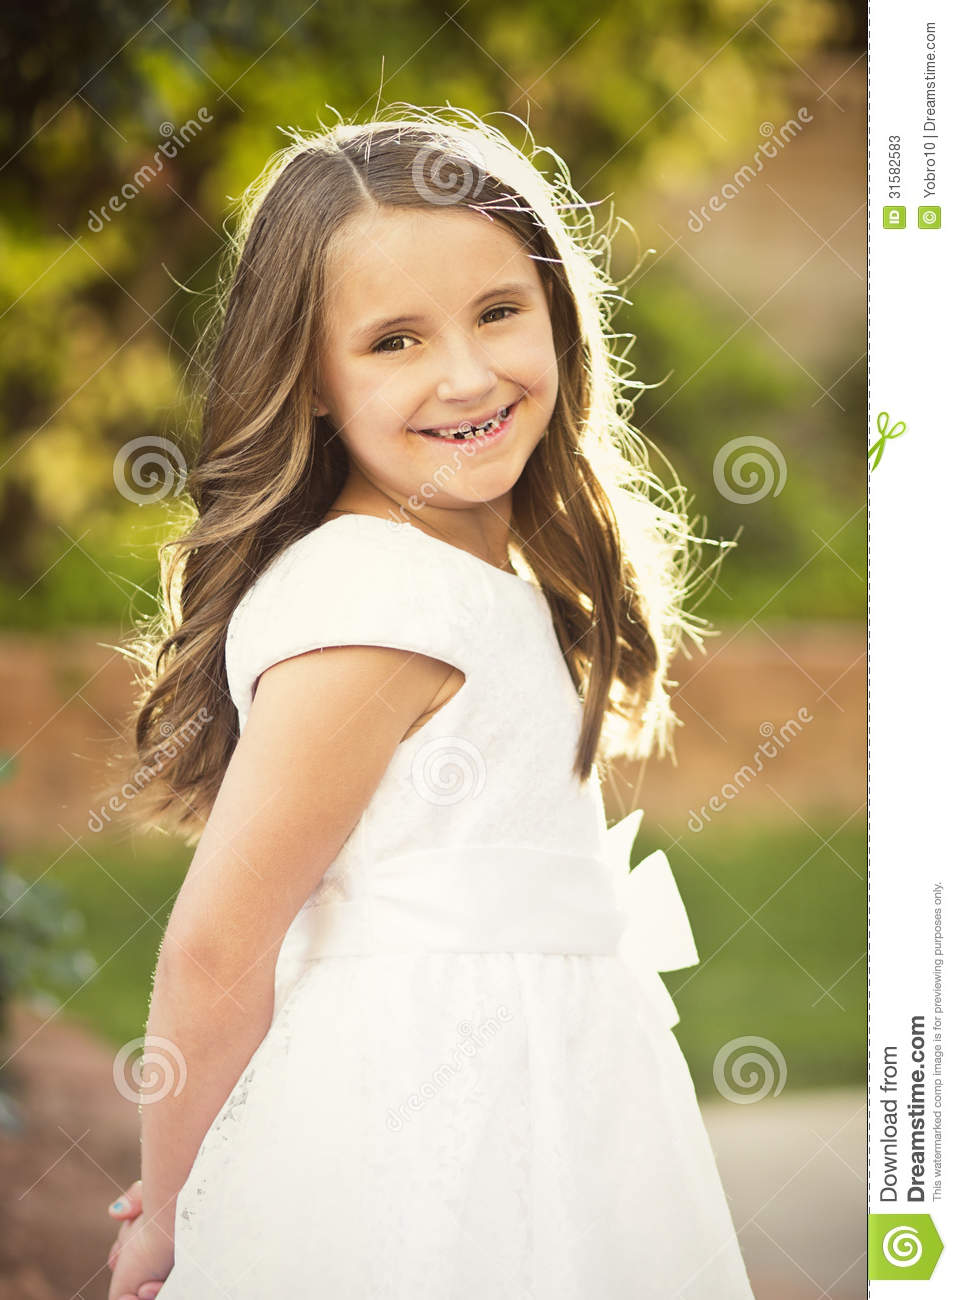 cute little girl wearing a white dress stock image - image of child